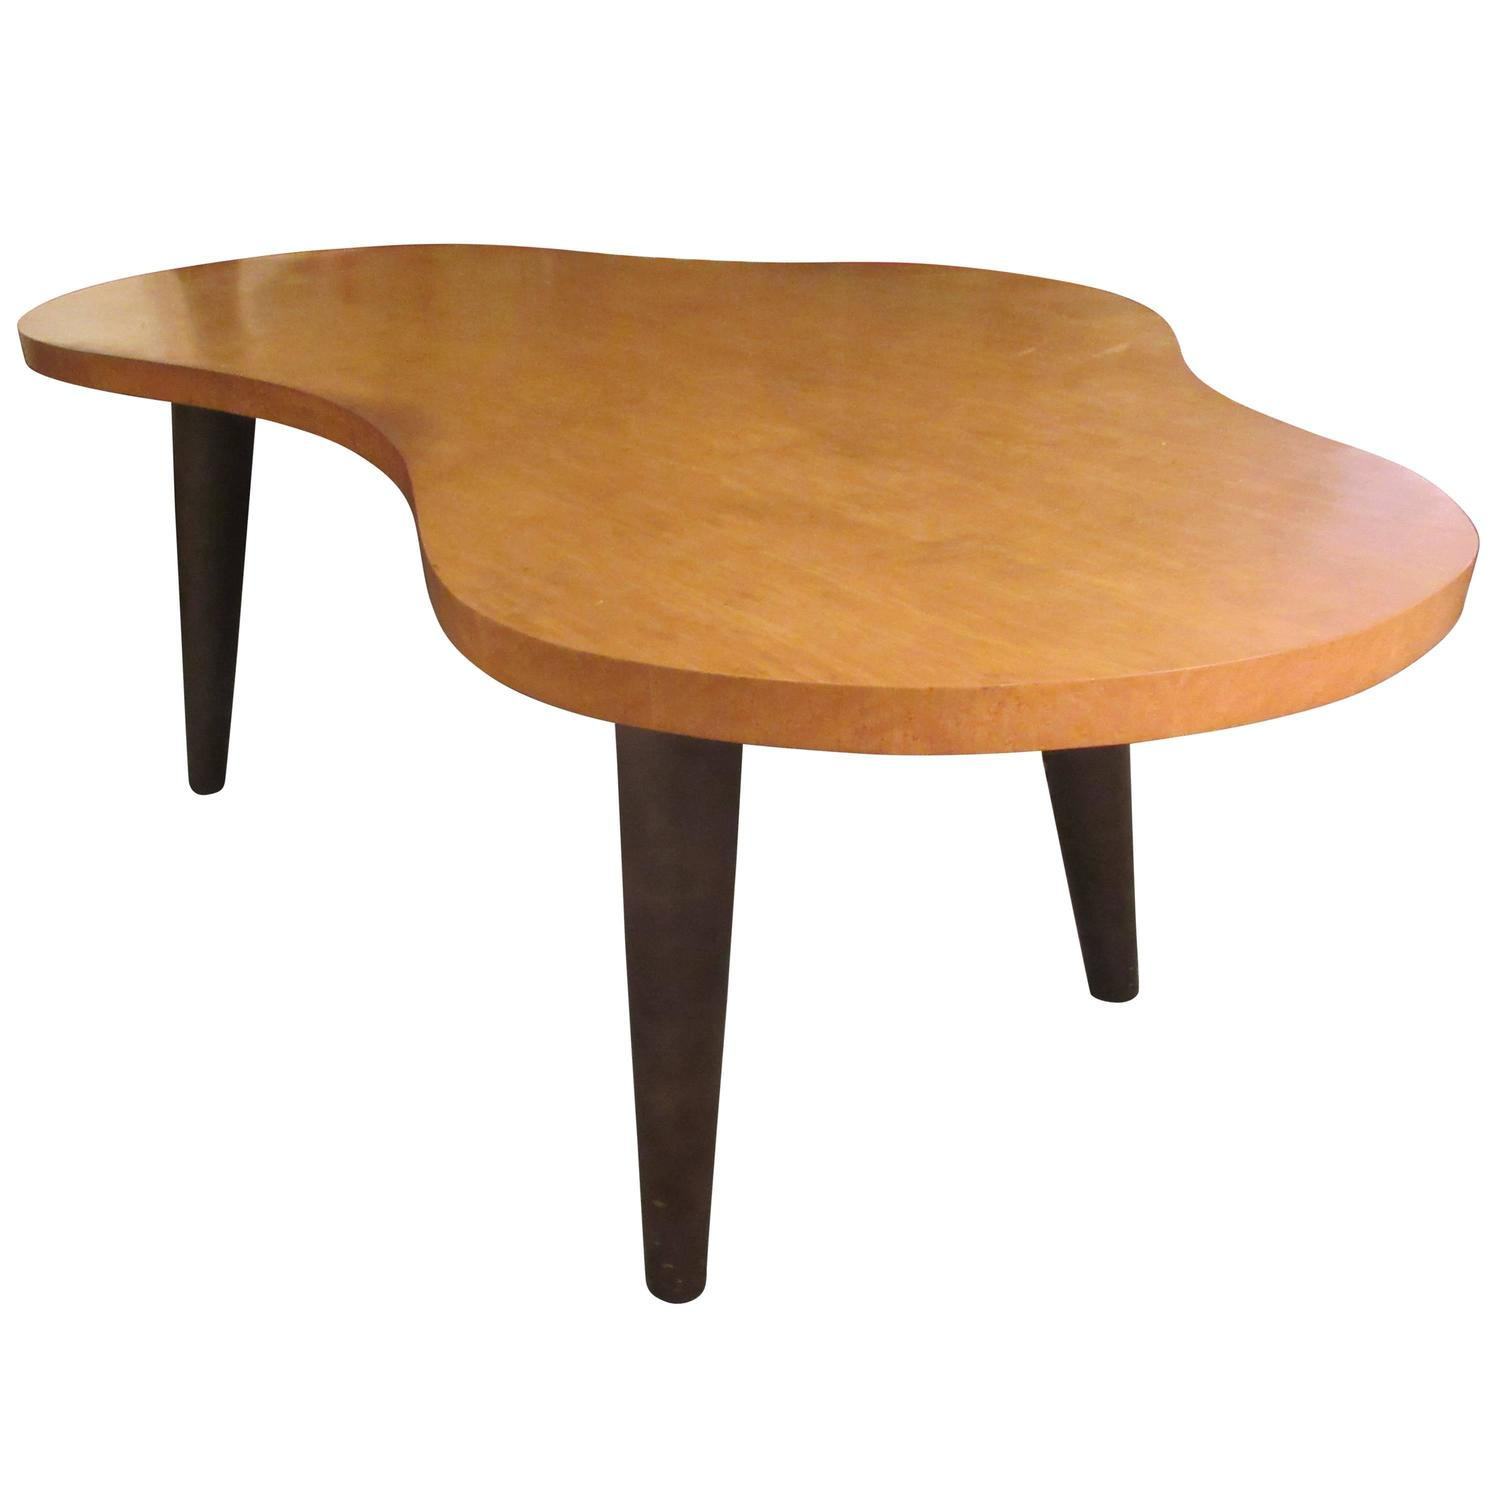 canopy pine overstock walnut ddae urban soho today home euphorbia niche desk shipping shell product free garden